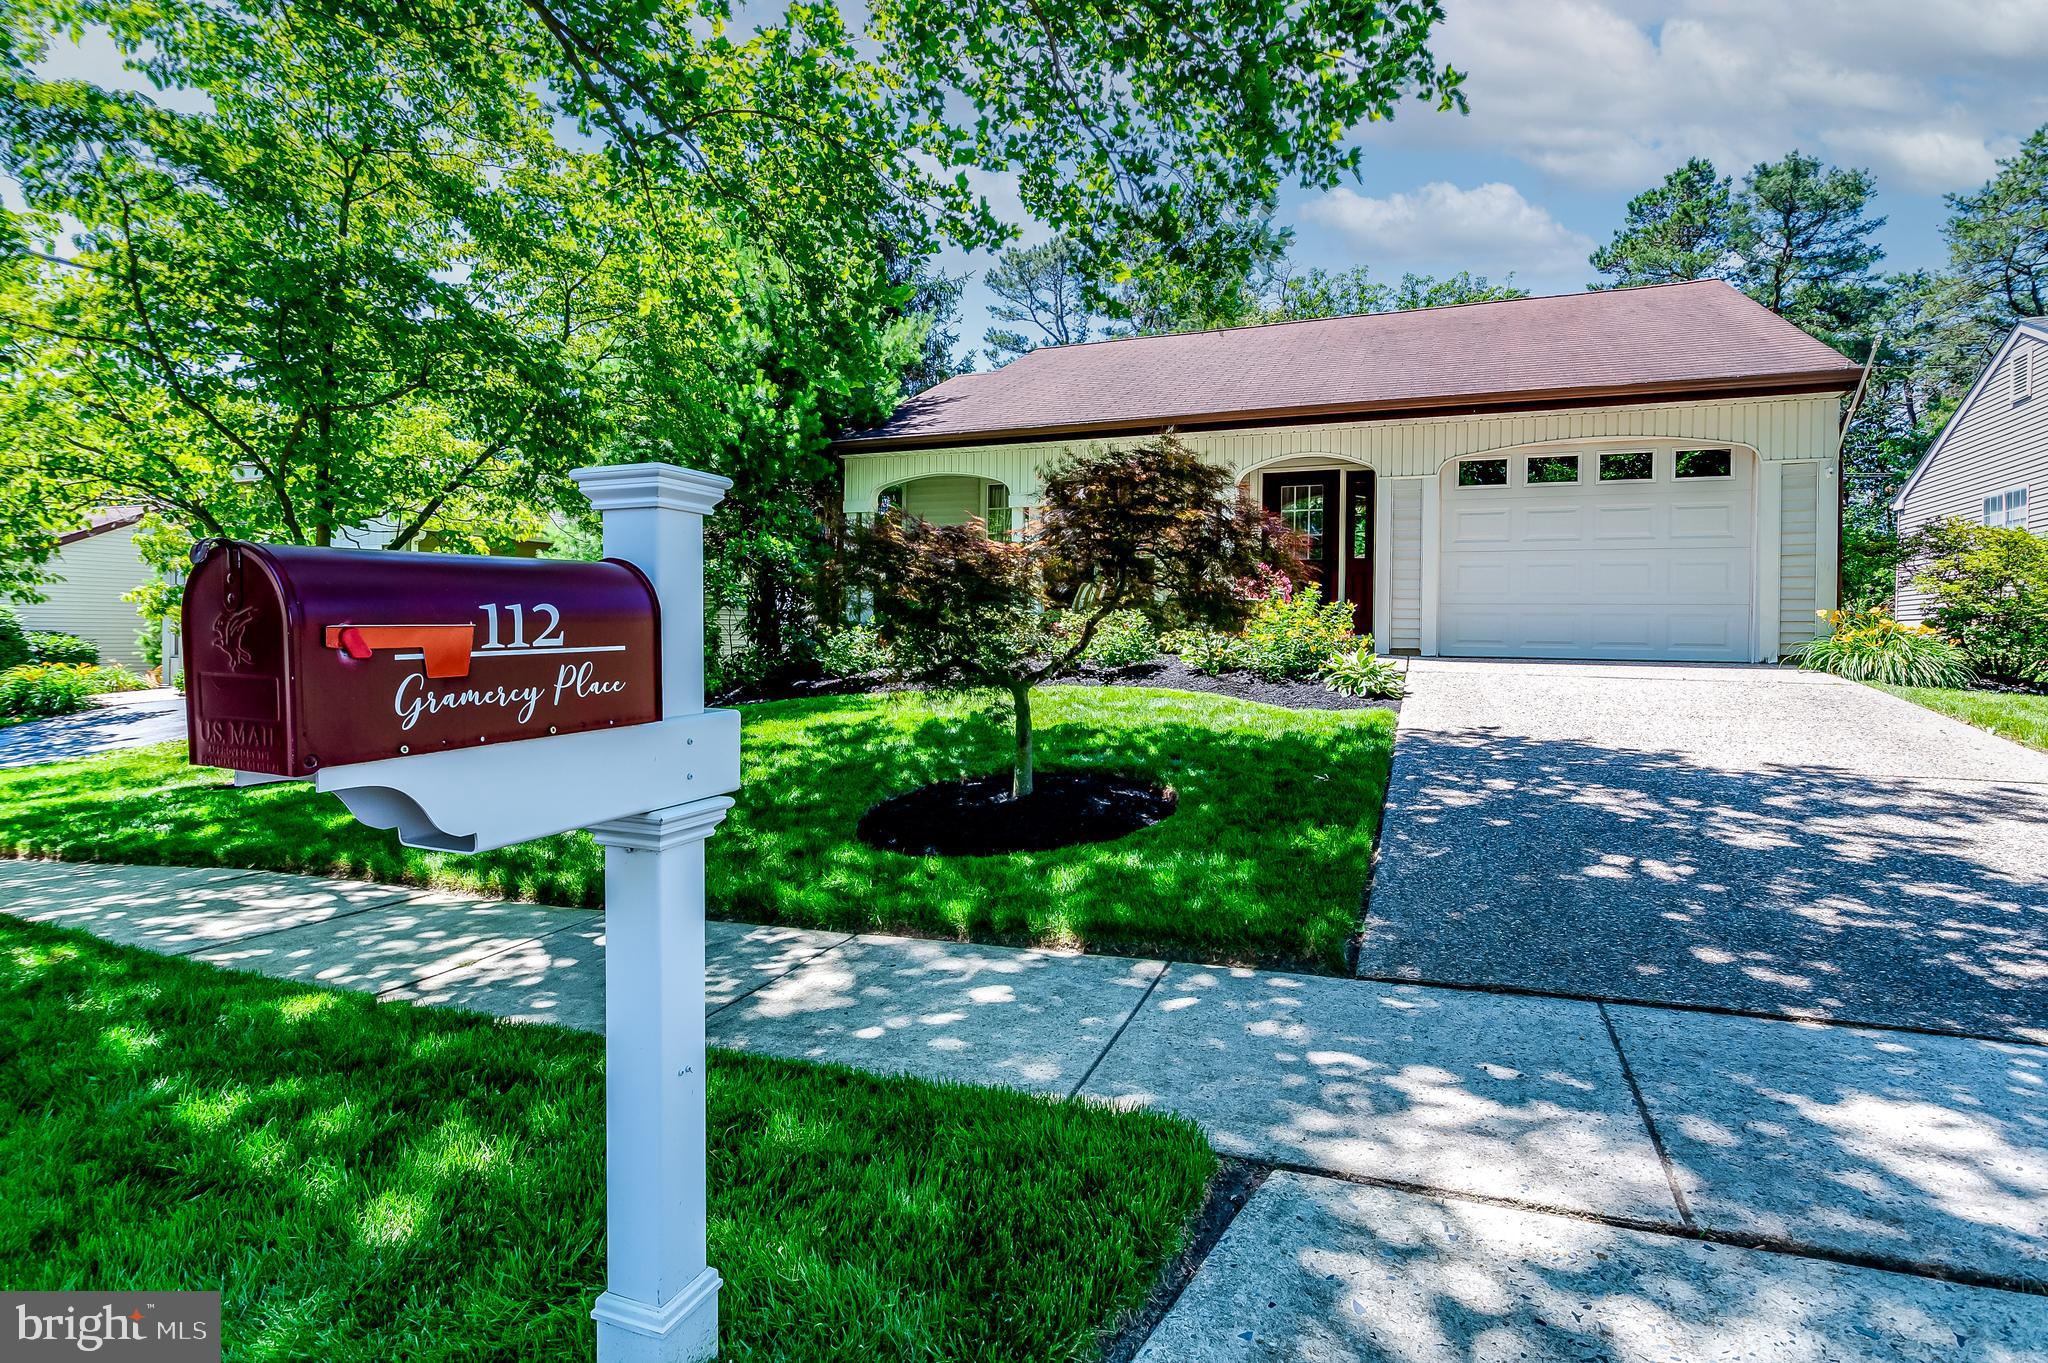 Absolutely Fabulous, Desirable Fairfax model boasts 1728 sq. ft of Stunning Living on a Quiet, Tree-lined Street.  As you walk up the River Stone Driveway and past the Dogwood and Japanese Maple Trees, an Inviting Front Porch and Bright Front Door leads you into this Beautifully Updated and Lovingly Maintained Home.  What captures your attention is the Custom Four and Six-inch Craftsman Millwork around all the Windows and Baseboards.  The Wonderfully Appointed Spacious Living Room seamless flows into a Dining Room with Chair Rail and eye-catching Chandelier, perfect for Elegant Dining. As we move into the Custom Kitchen with Lovely White, Soft-Close Cabinetry with Gorgeous Glass Front, Back Lighted Dish Cabinet and Convenient Drawer Cabinetry with Under-Cabinet Lighting that showcases the Gleaming Granite Countertop with Under-Mount Sink. All are enhanced with Pristine Subway Tile Backsplash and Complimented by the Stainless Steel Appliances. Warm, Wood Laminate Flooring runs from the Kitchen into the Breakfast Area and Large Family Room that Features California Wood Shutters, an Electric Fireplace with Mantel, a true Showpiece of this Room.  Sliders lead to an Inviting Patio that can easily accommodate a Gathering also offers Calming Views of Greenspace. Back inside, the Hallway, replete with Graceful Custom Board and Batten Walls invite you toward a Stunning and Spacious Primary Bedroom Ensuite with Sliding Barn Doors that lead to a Dedicated Primary Bathroom with Walk-In Tiled Shower and Floor. Custom Lighting over the Dresser Cabinet with Marble Vanity Top, provides that coveted counter space. It's sure to be appreciated by those with Exquisite Taste. The Main Bathroom will be admired by your Guests given the Tile Flooring, Tasteful Vanity and Mirror. The Bright and Airy Second Bedroom, which can serve as a Guest, Office or Craft Room has Floor to Ceiling Mirrored Closets. Additional Floor to Ceiling Mirrored Closet Space and Spacious Pantry are located in the H